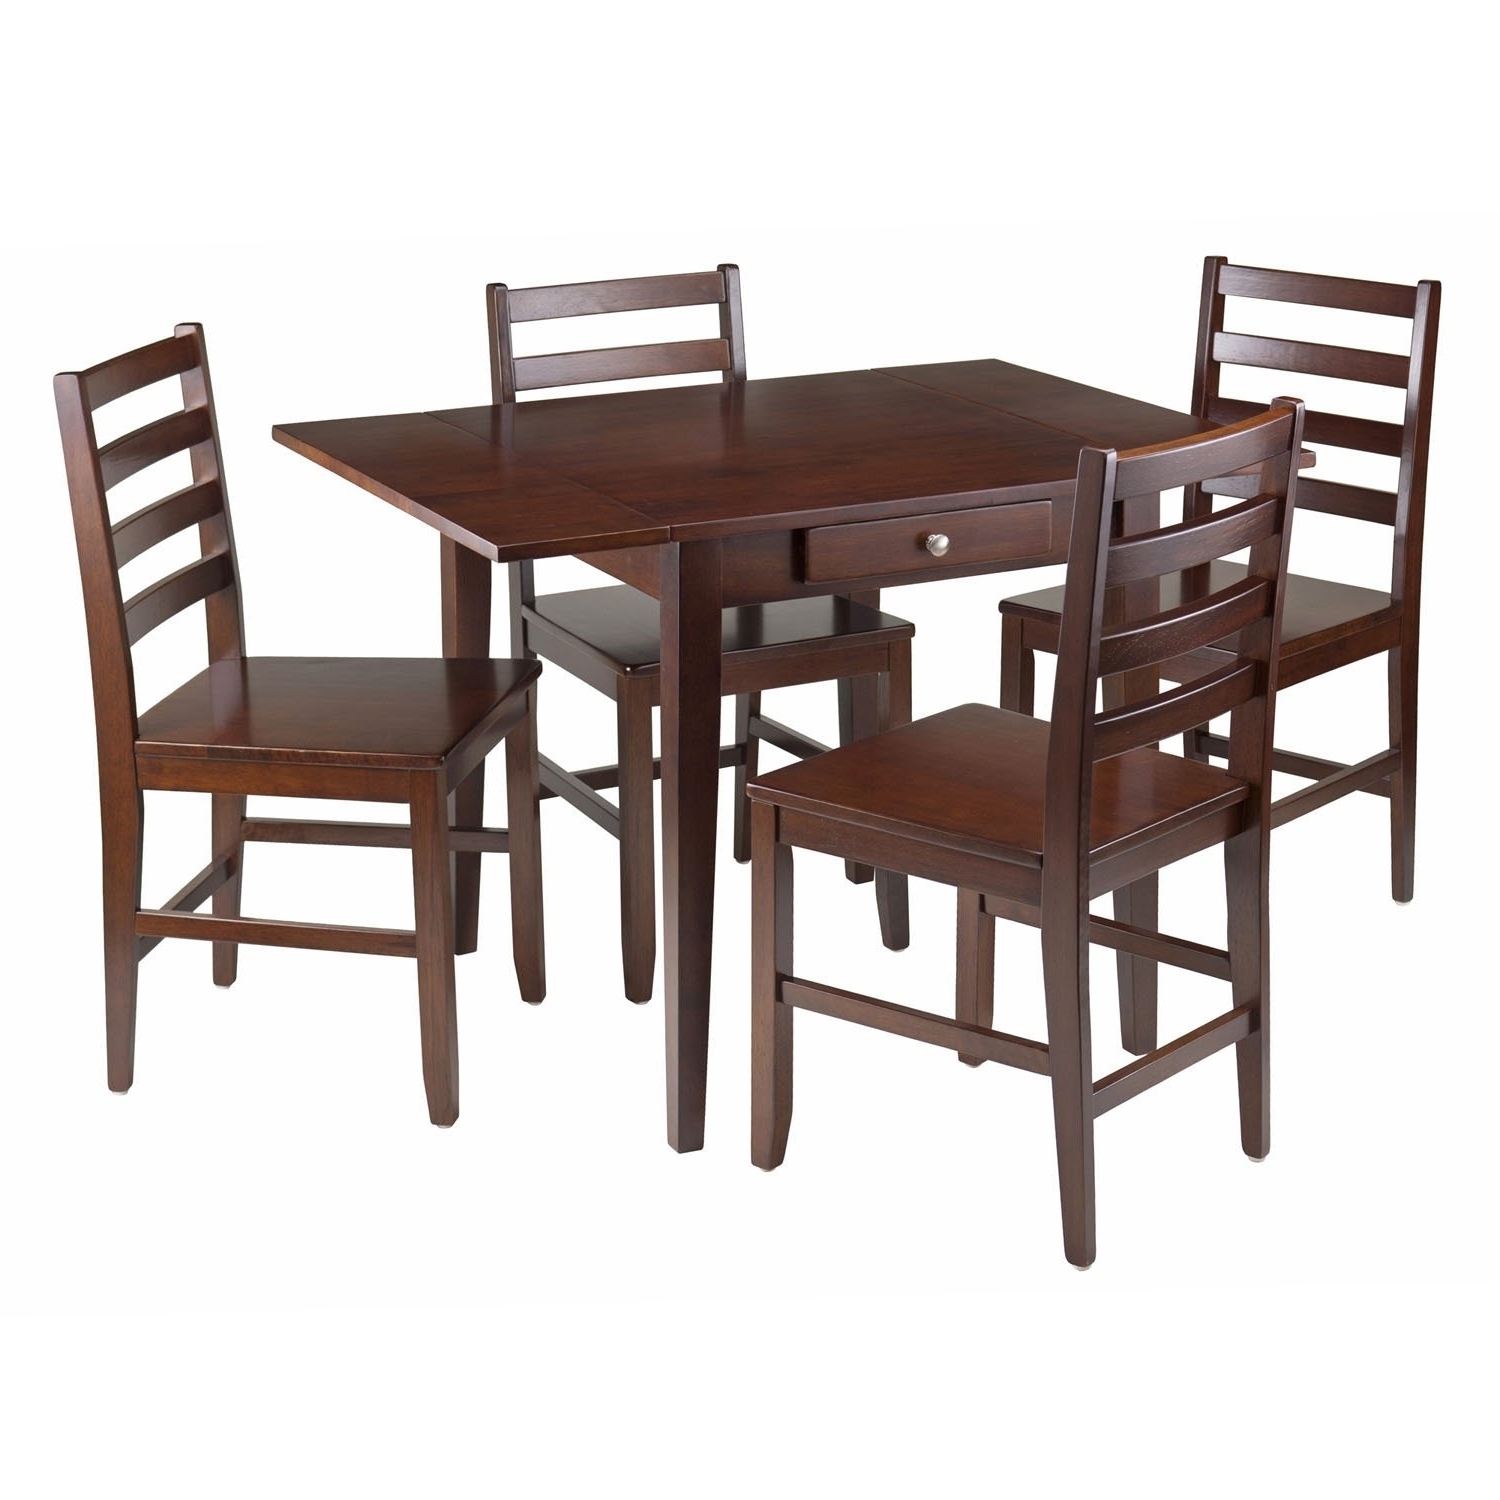 Hamilton Dining Tables For 2017 Hamilton 5 Pc Drop Leaf Dining Table With 4 Ladder Back Chairs (Gallery 19 of 25)